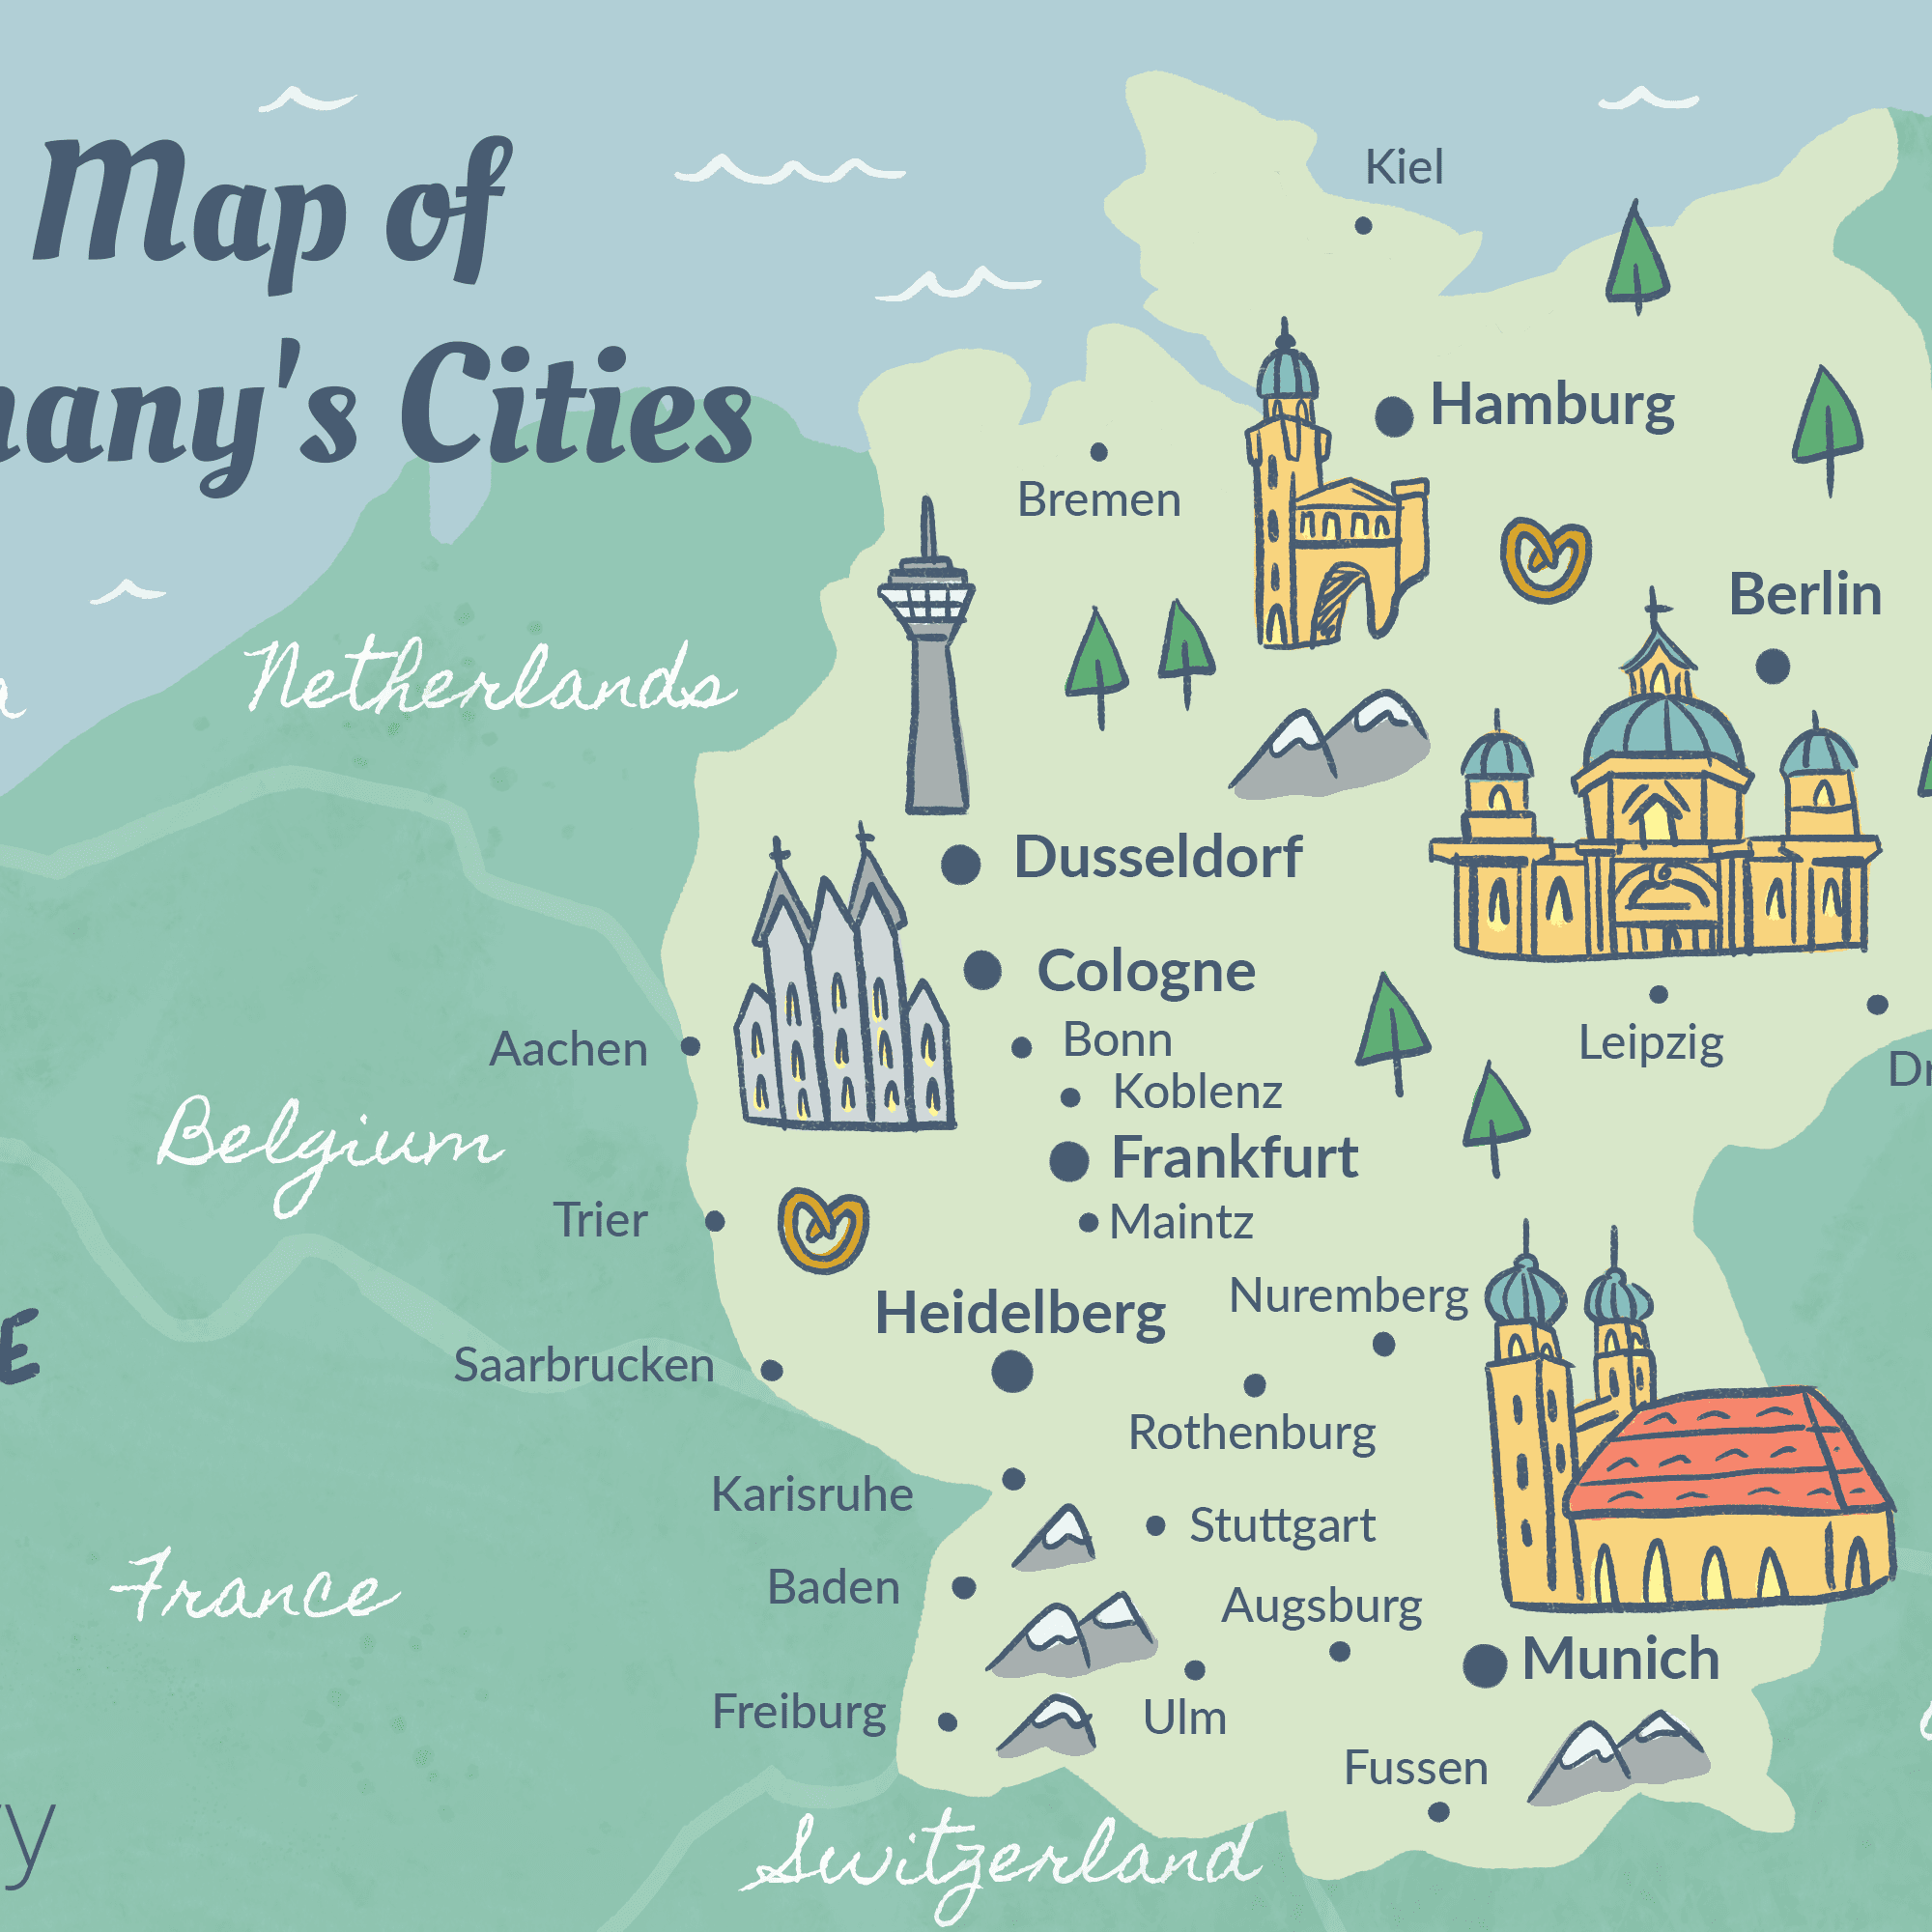 Map Of Germany Showing Dusseldorf.Germany Cities Map And Travel Guide